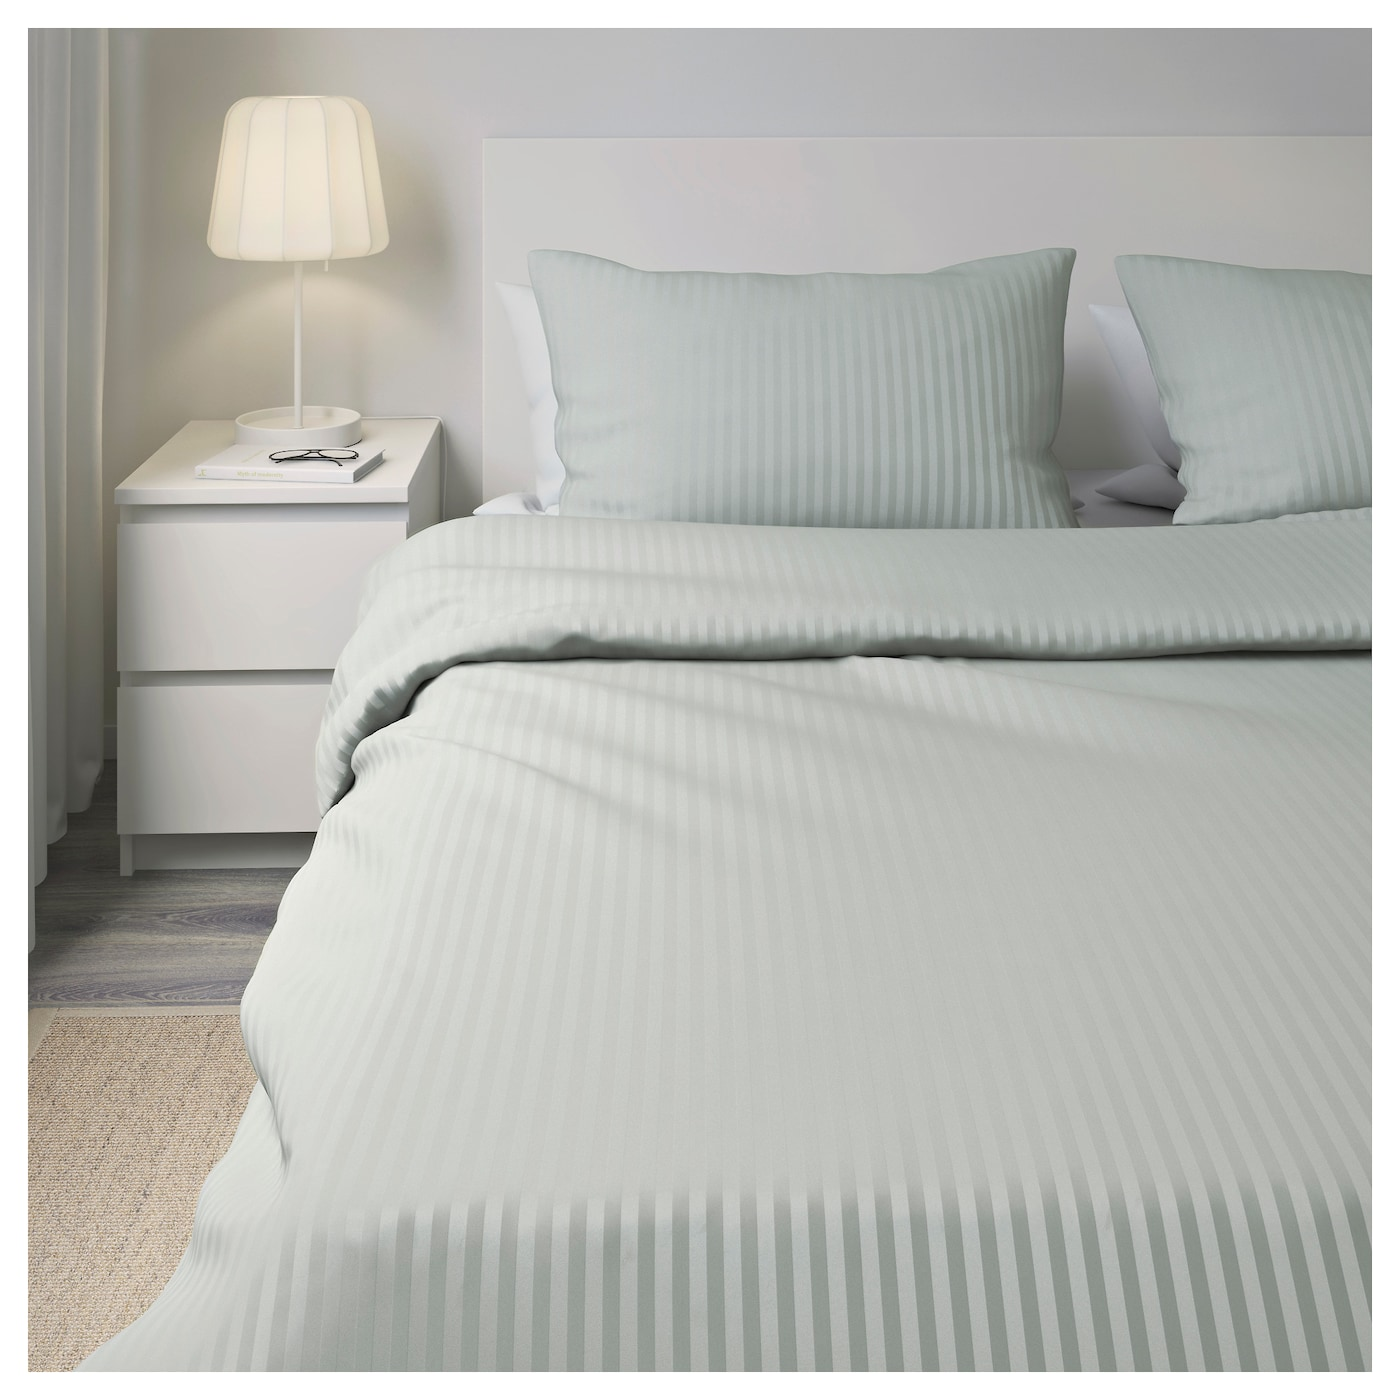 Ikea Nattjasmin Quilt Cover And 2 Pillowcases The Ons Keep In Place